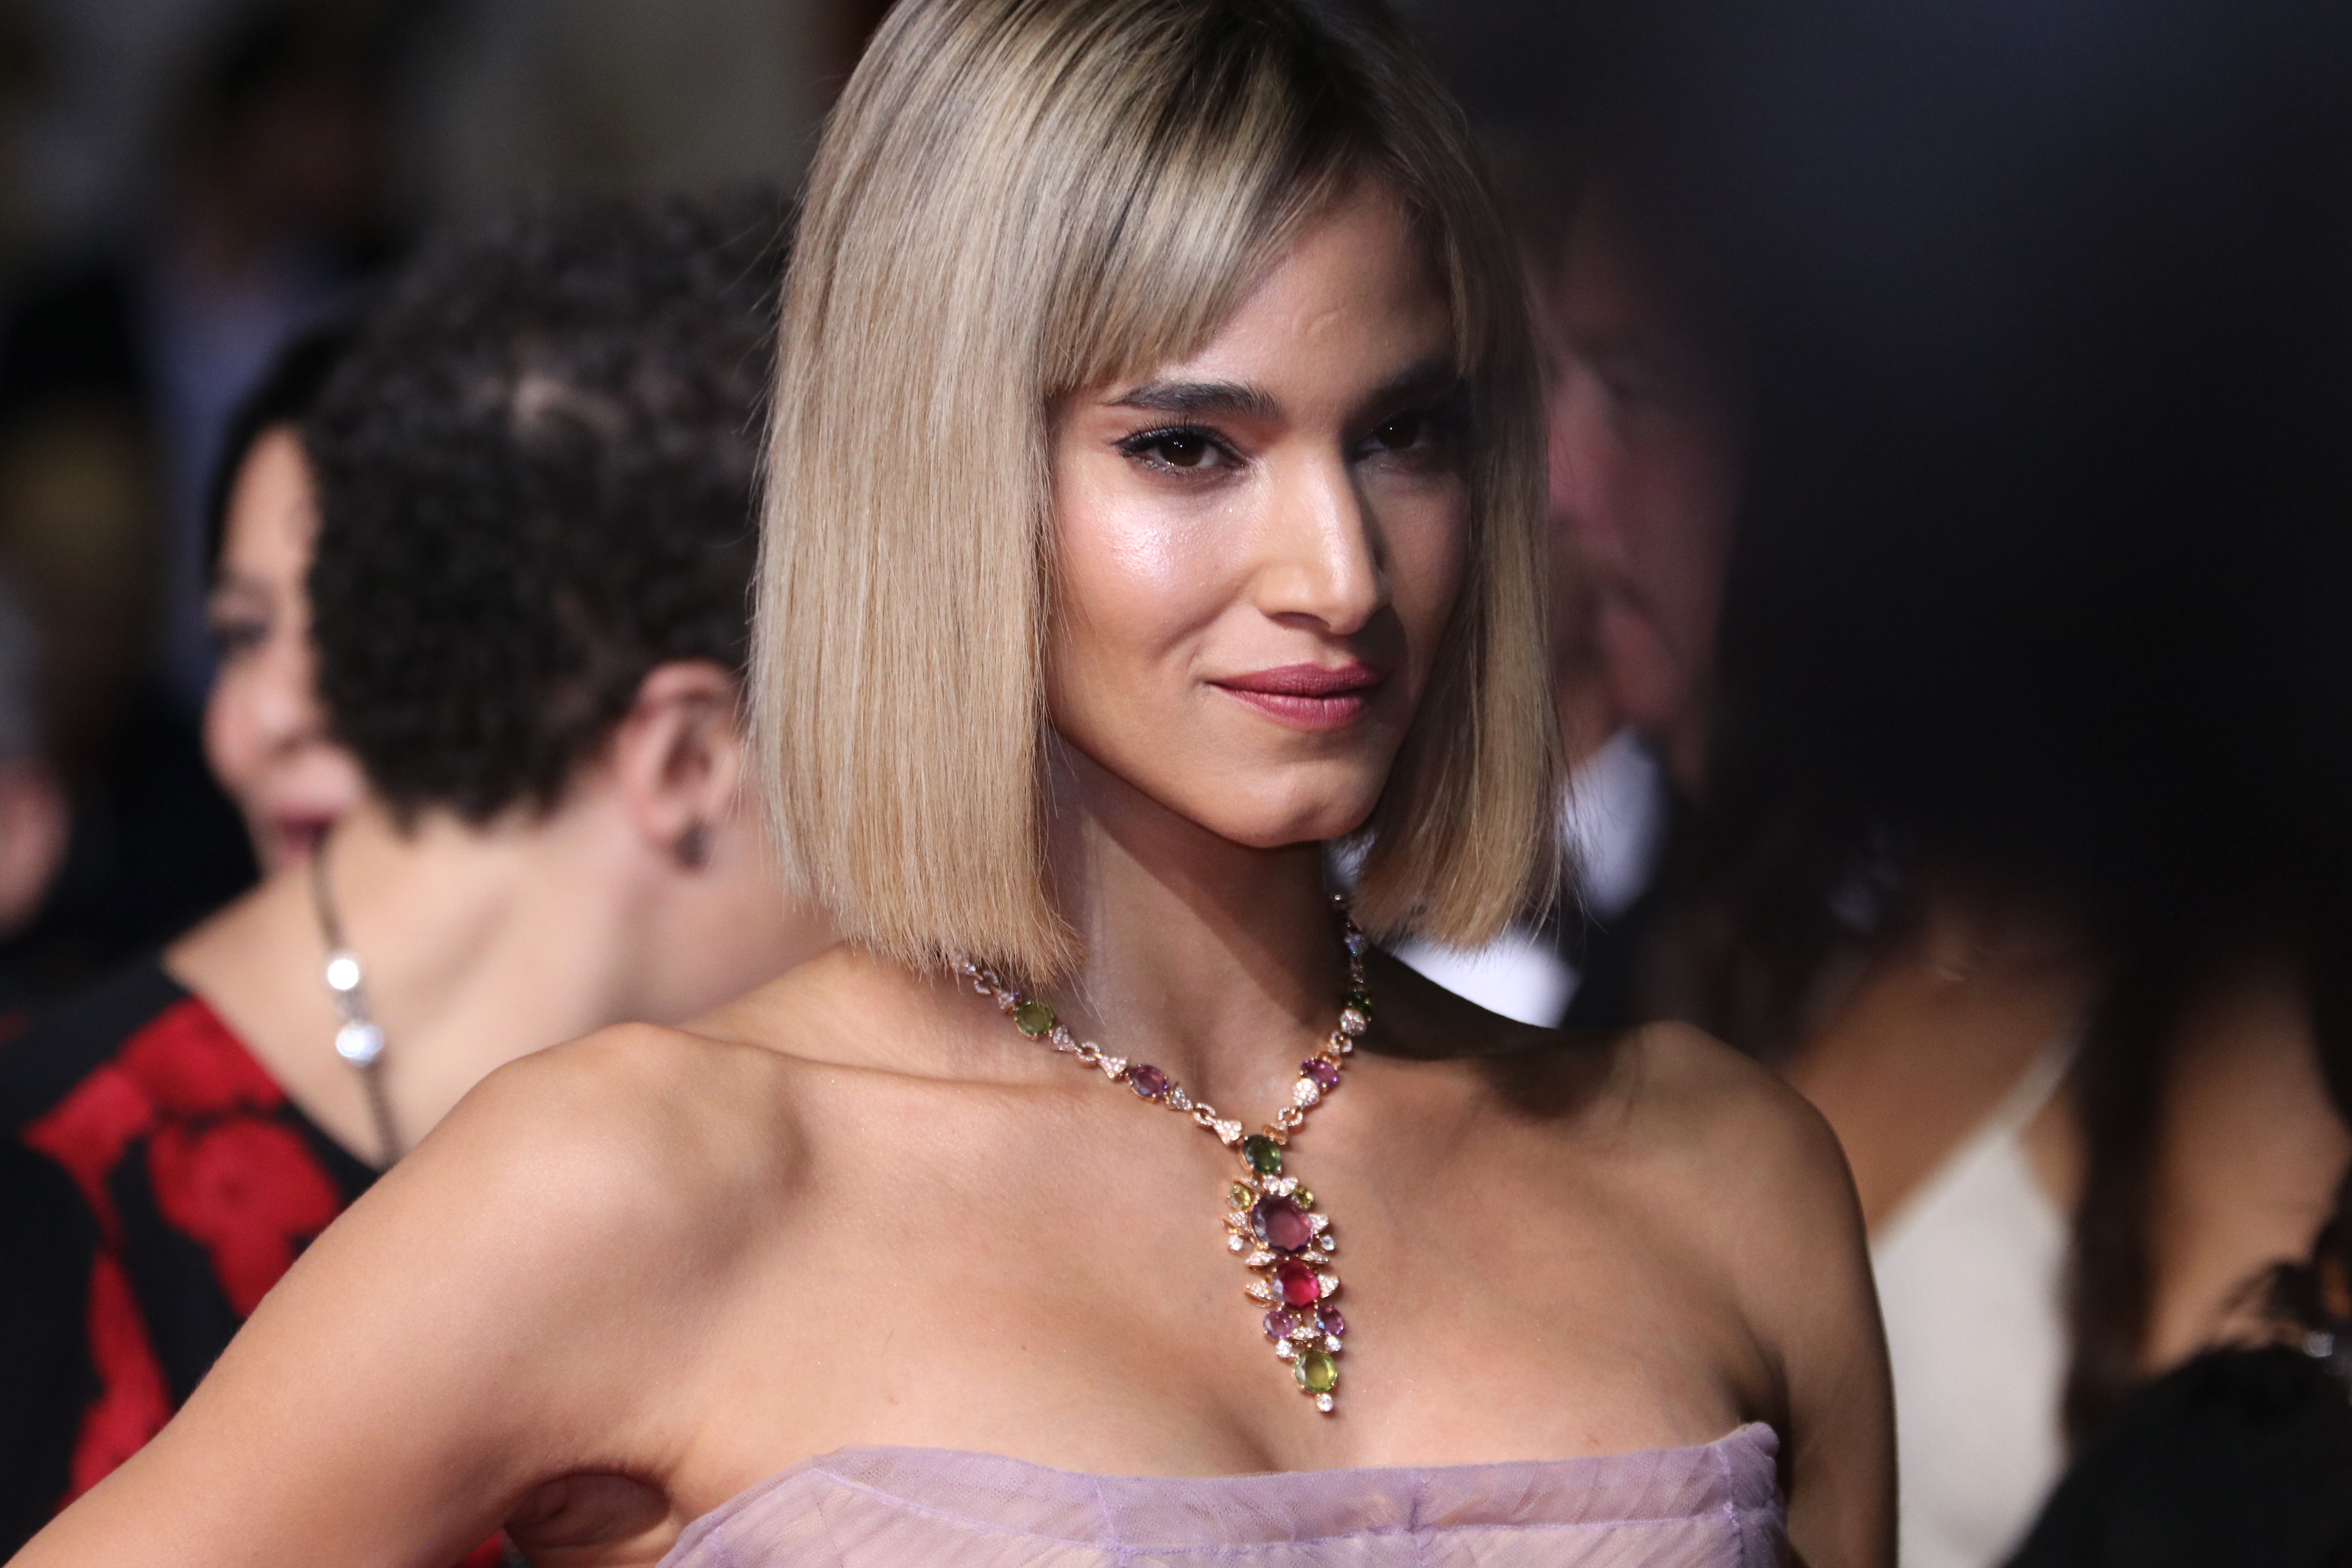 Cannes 2018: la bellissima Sofia Boutella sul red carpet di Fahrenheit 451